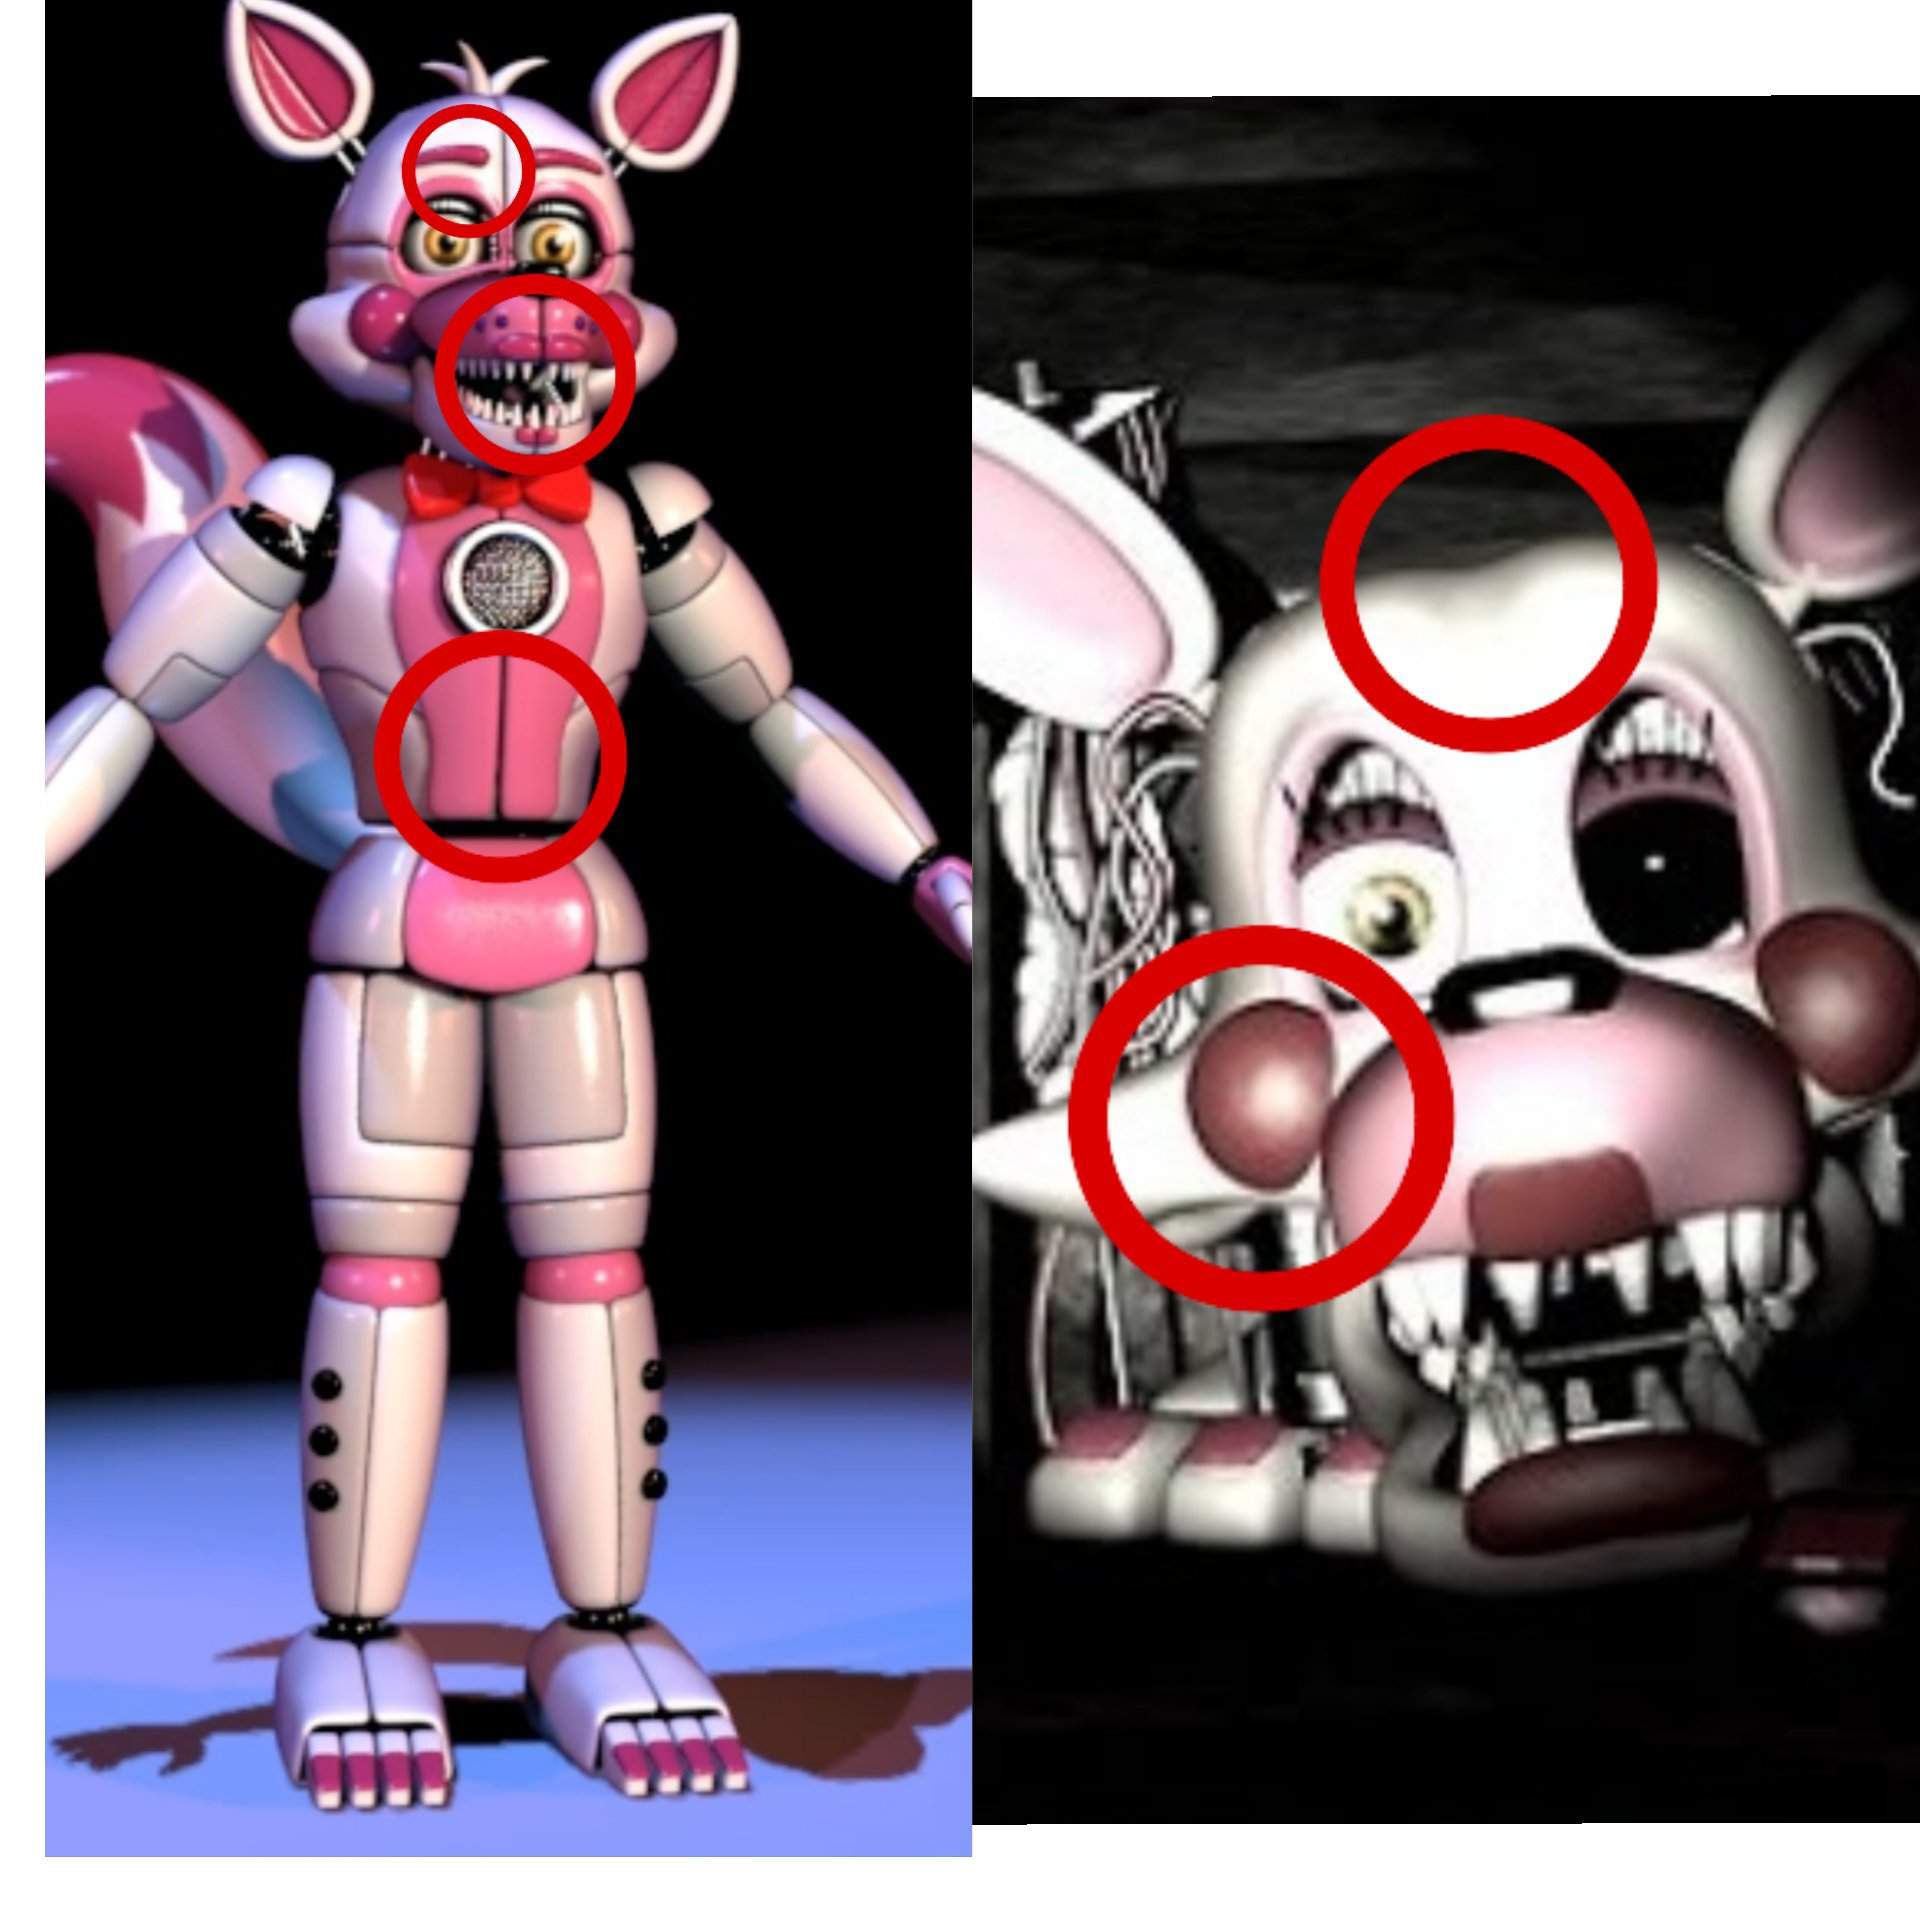 5 Nights At Foxys mangle and sl funtime foxy are not the same- fnaf theory